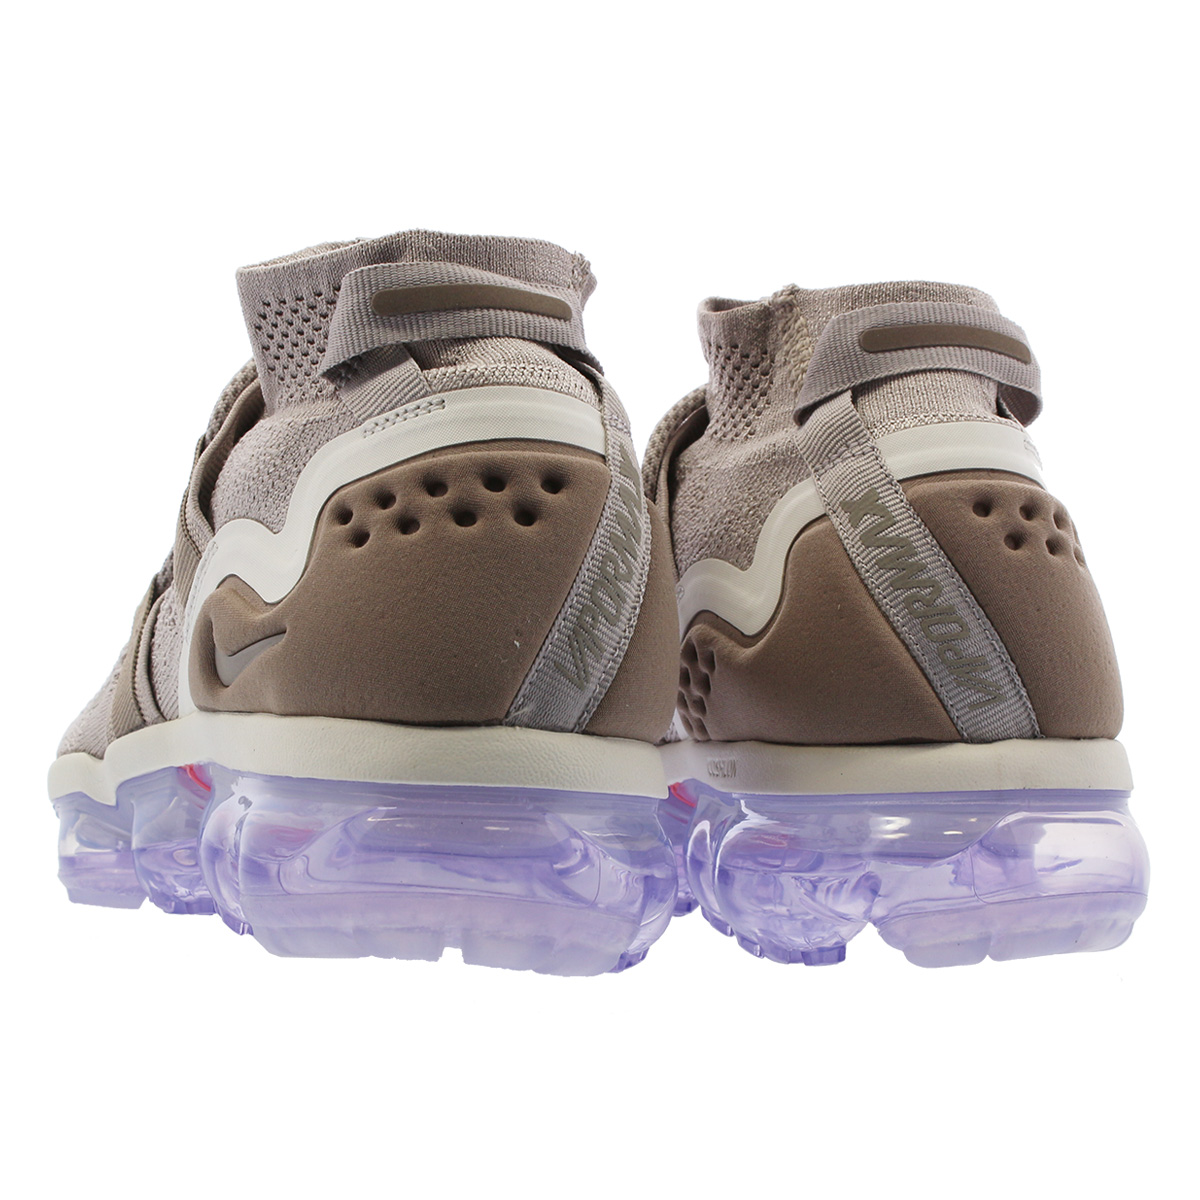 062a5e85a0 ... NIKE AIR VAPORMAX FLYKNIT UTILITY Nike vapor max fried food knit utility  MOON PARTICLE/PERSIAN ...